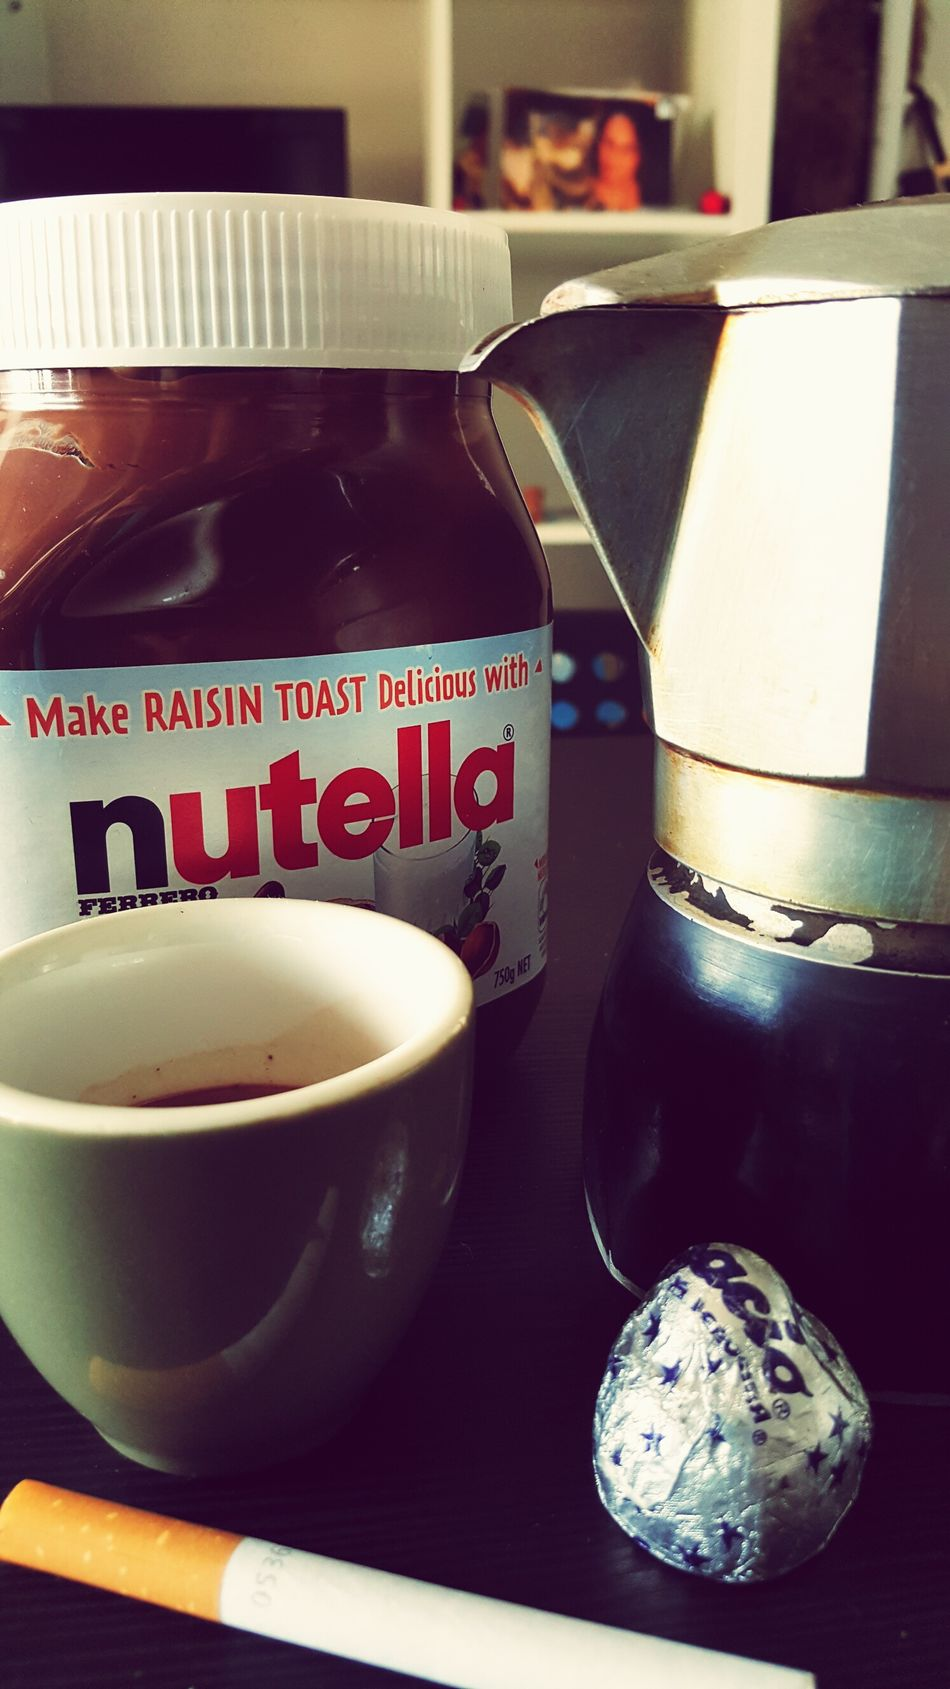 Morning Light Breakfast ♥ Italian Food Home Sweet Home Italianstyle Moka Espresso Coffee Cigarette  Nutella ♥ ImInLove